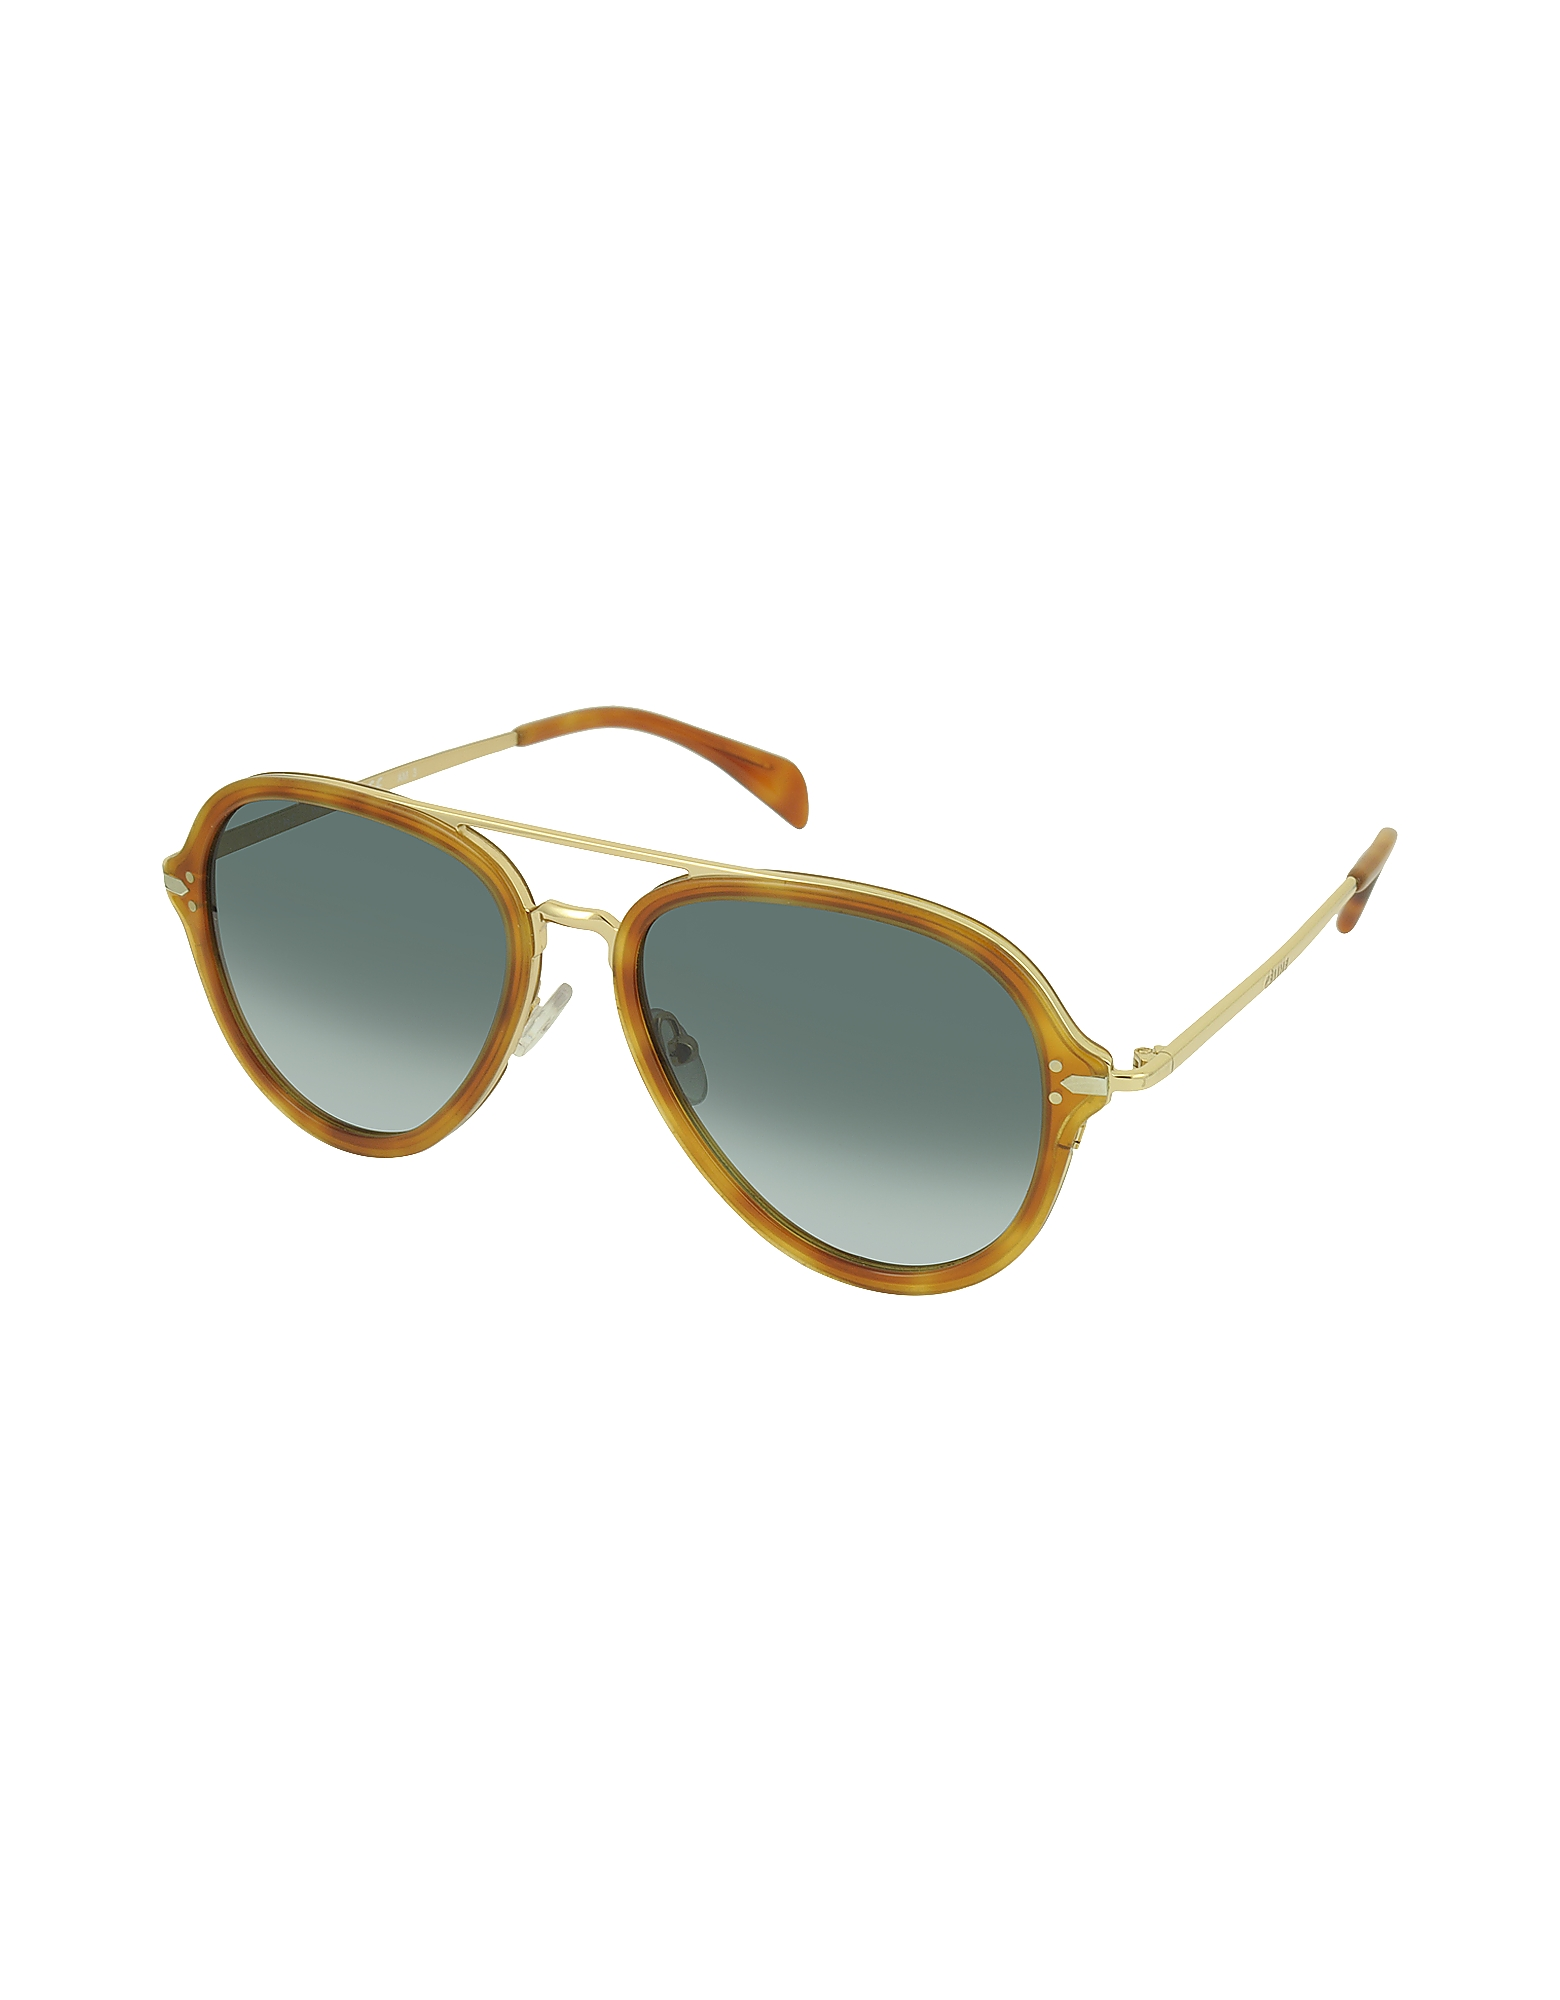 DROP CL 41374/S Acetate Aviator Unisex Sunglasses от Forzieri.com INT